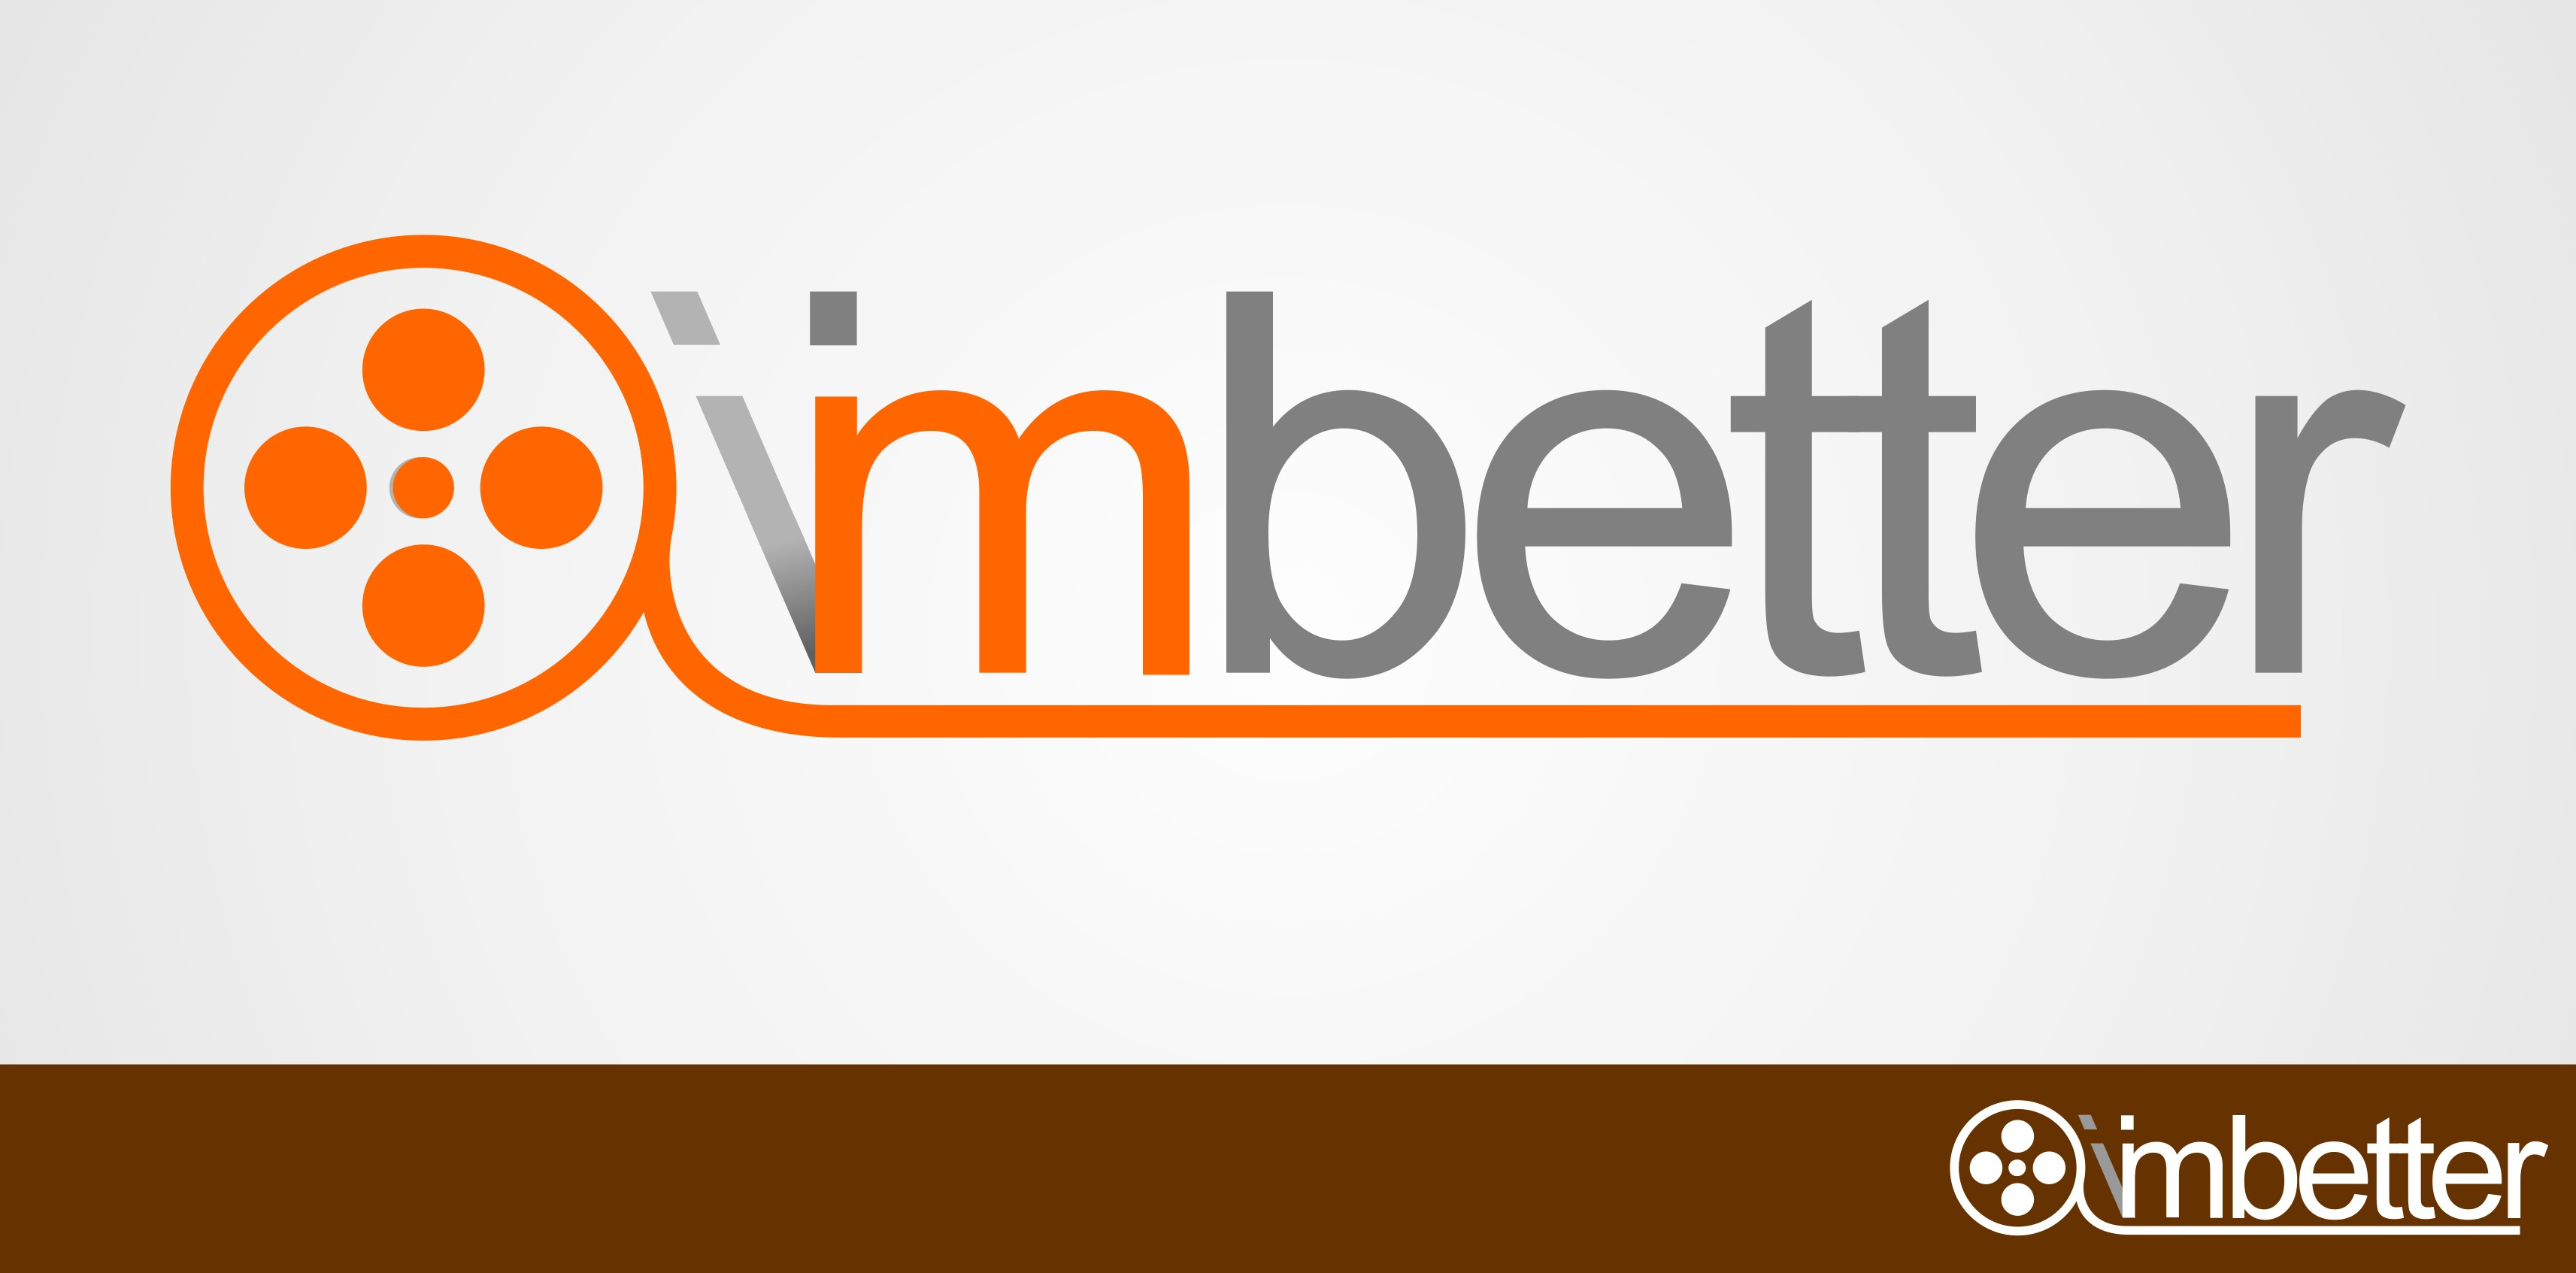 Logo Design by Crispin Jr Vasquez - Entry No. 4 in the Logo Design Contest Imaginative Logo Design for imbetter.